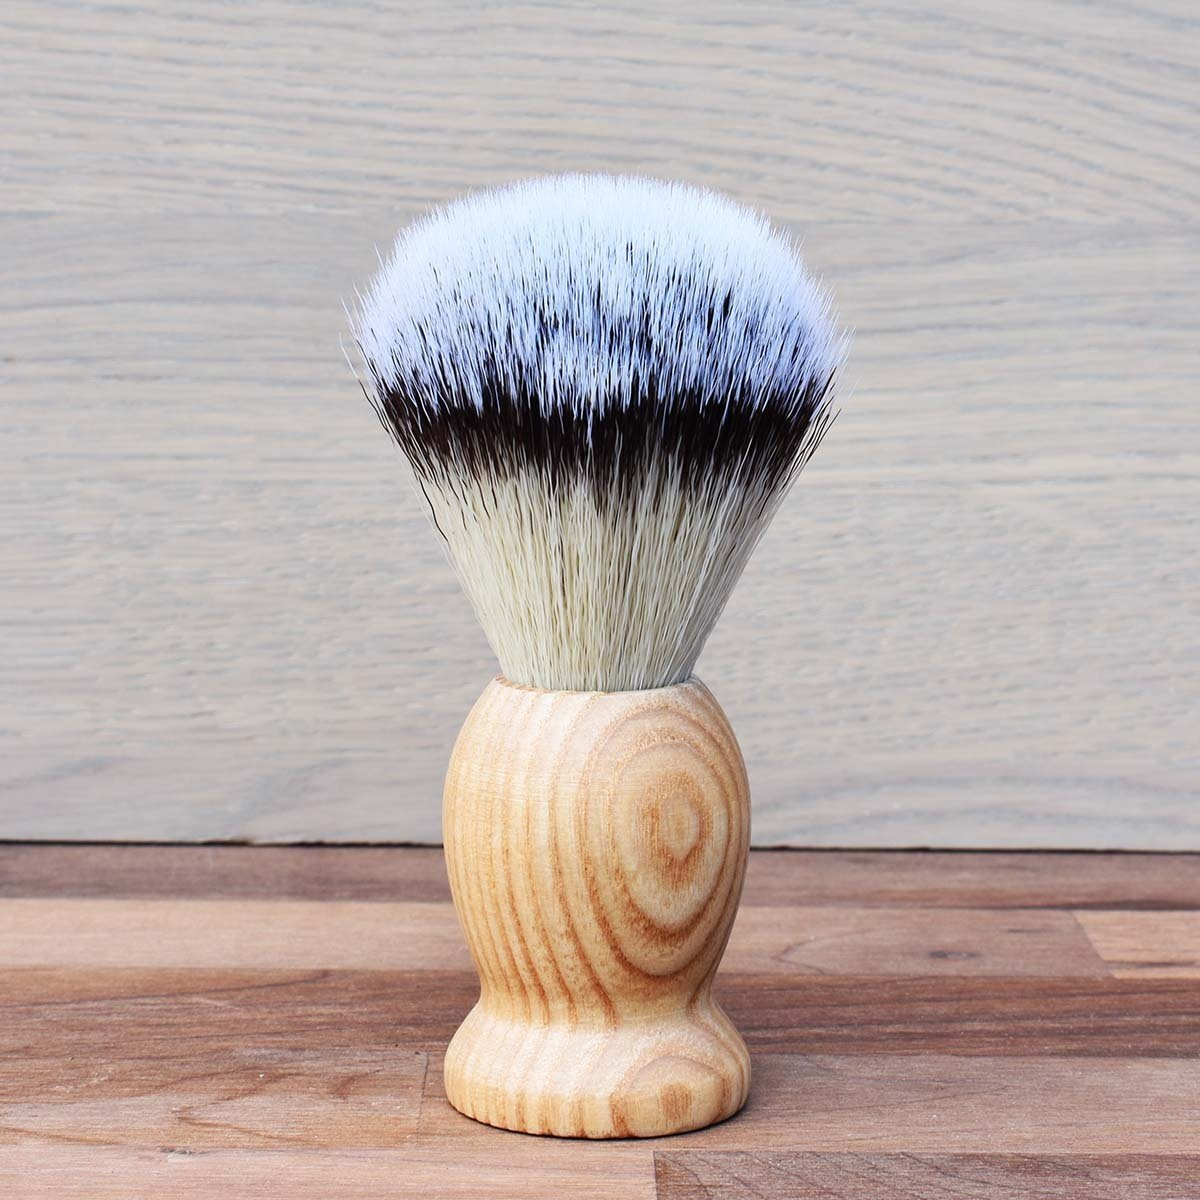 vegan friendly shaving brush